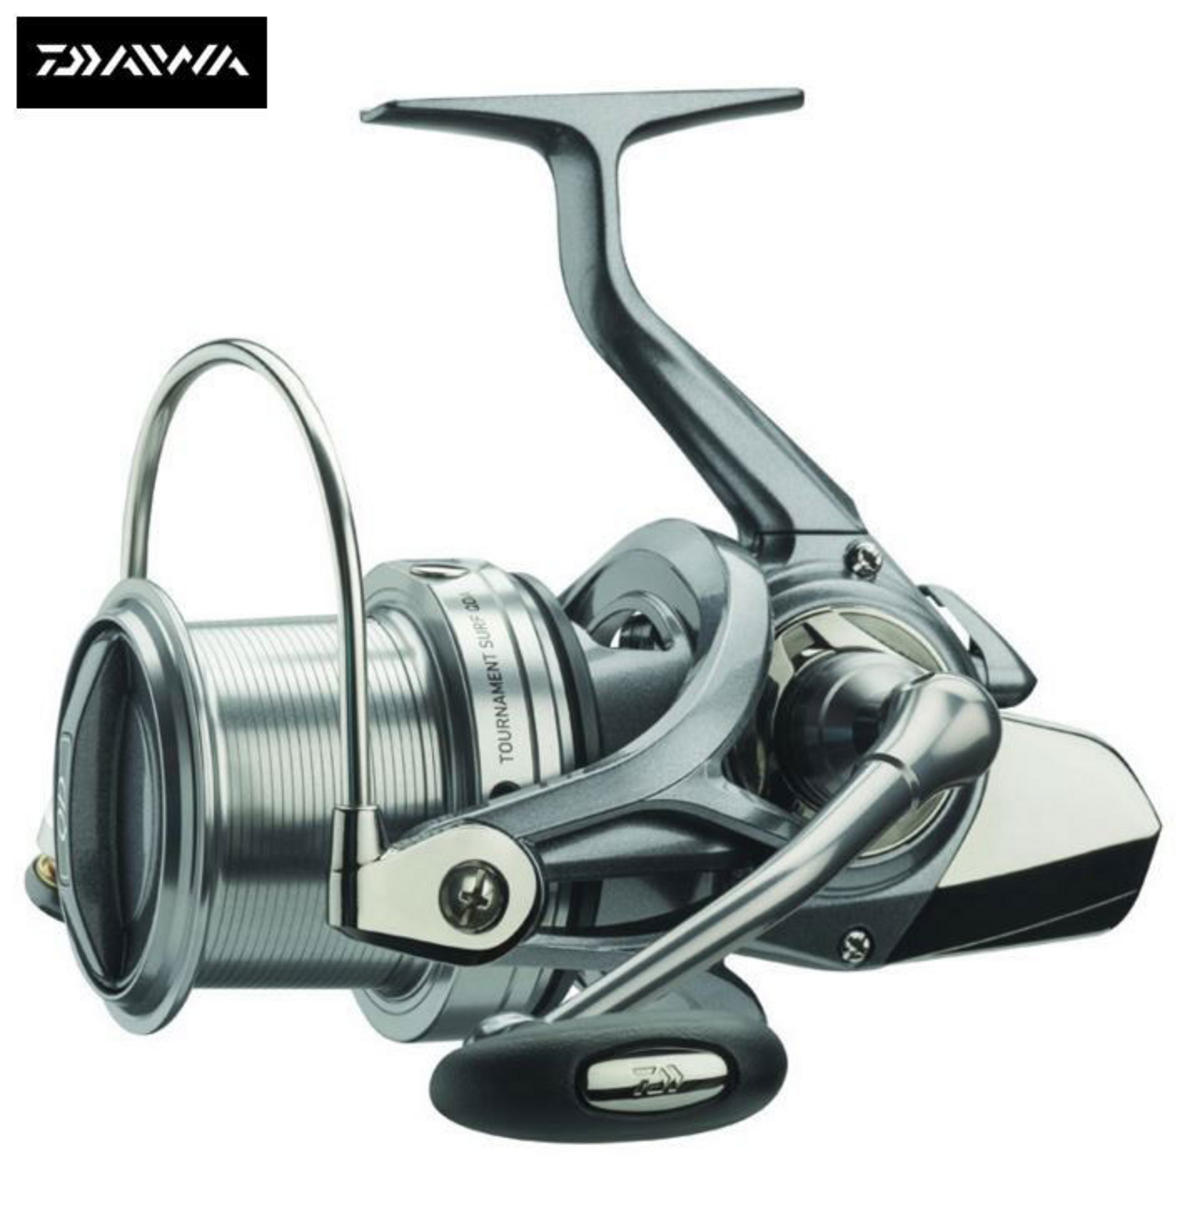 EX DISPLAY DAIWA TOURNAMENT SURF 4500 QDA FISHING REEL MODEL NO. TNS4500QDA